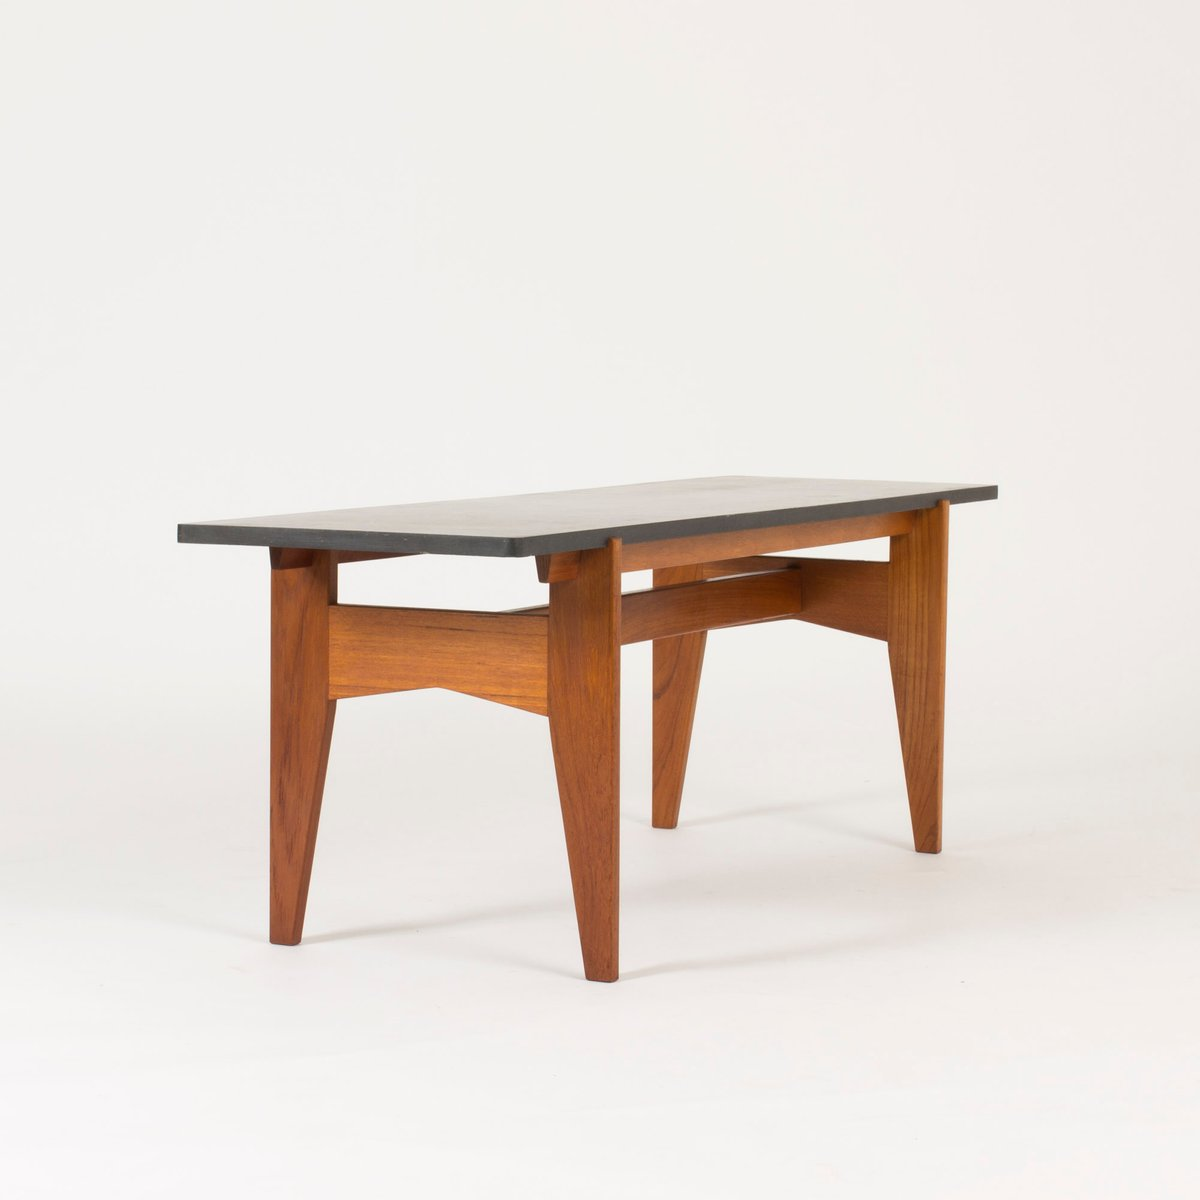 Teak And Black Marble Coffee Table By Hans Agne Jakobsson 1950s For Sale At Pamono